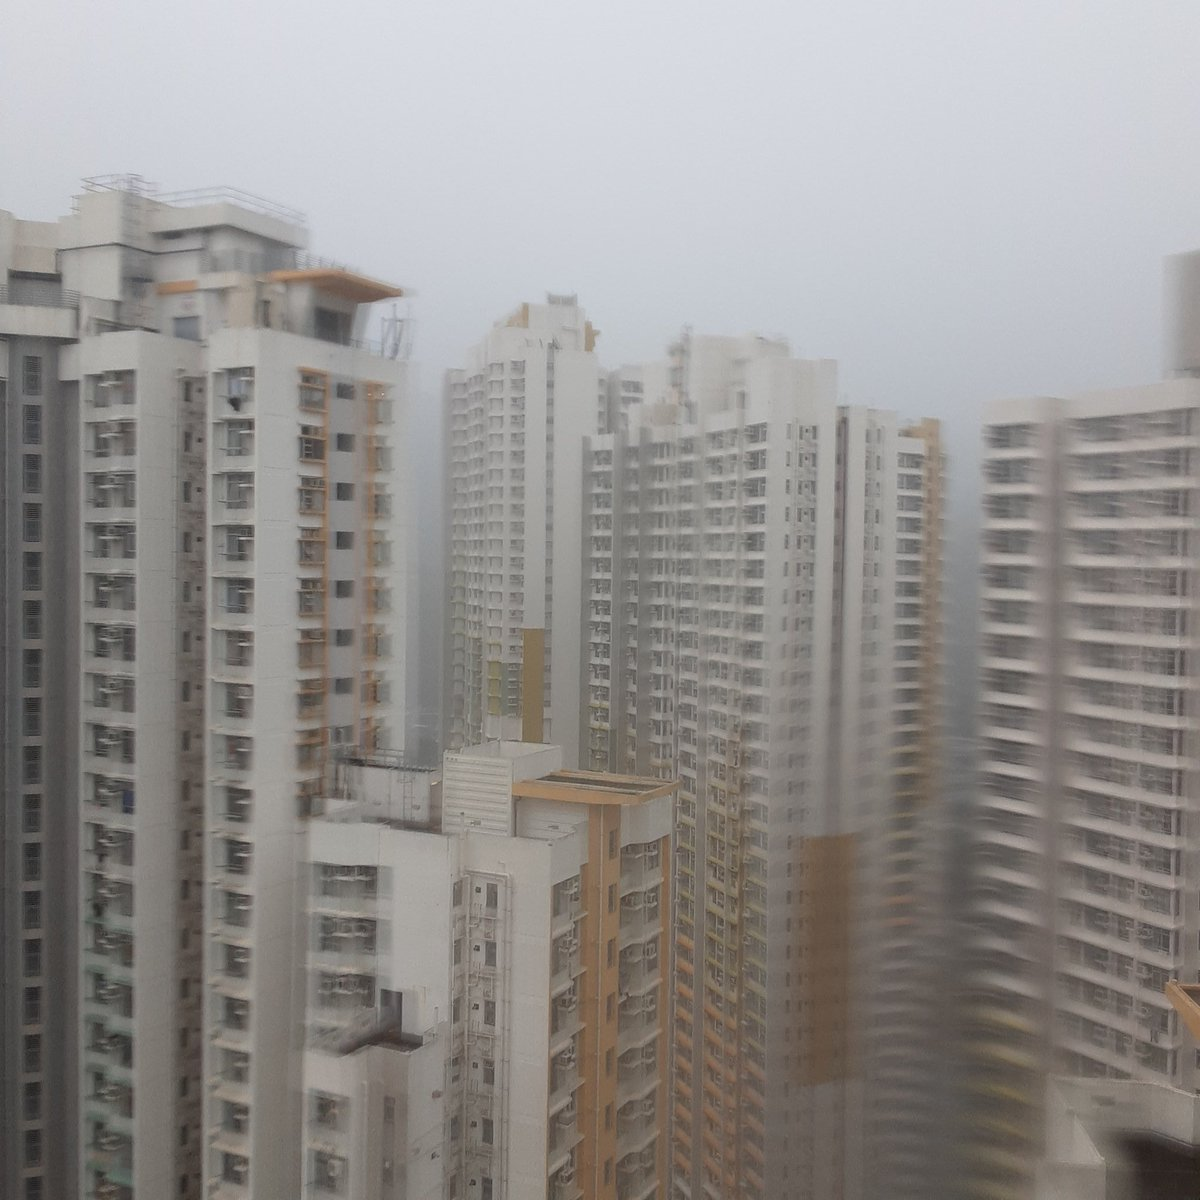 Another rainy day in Hong Kong<br>http://pic.twitter.com/2MkRReTHc1